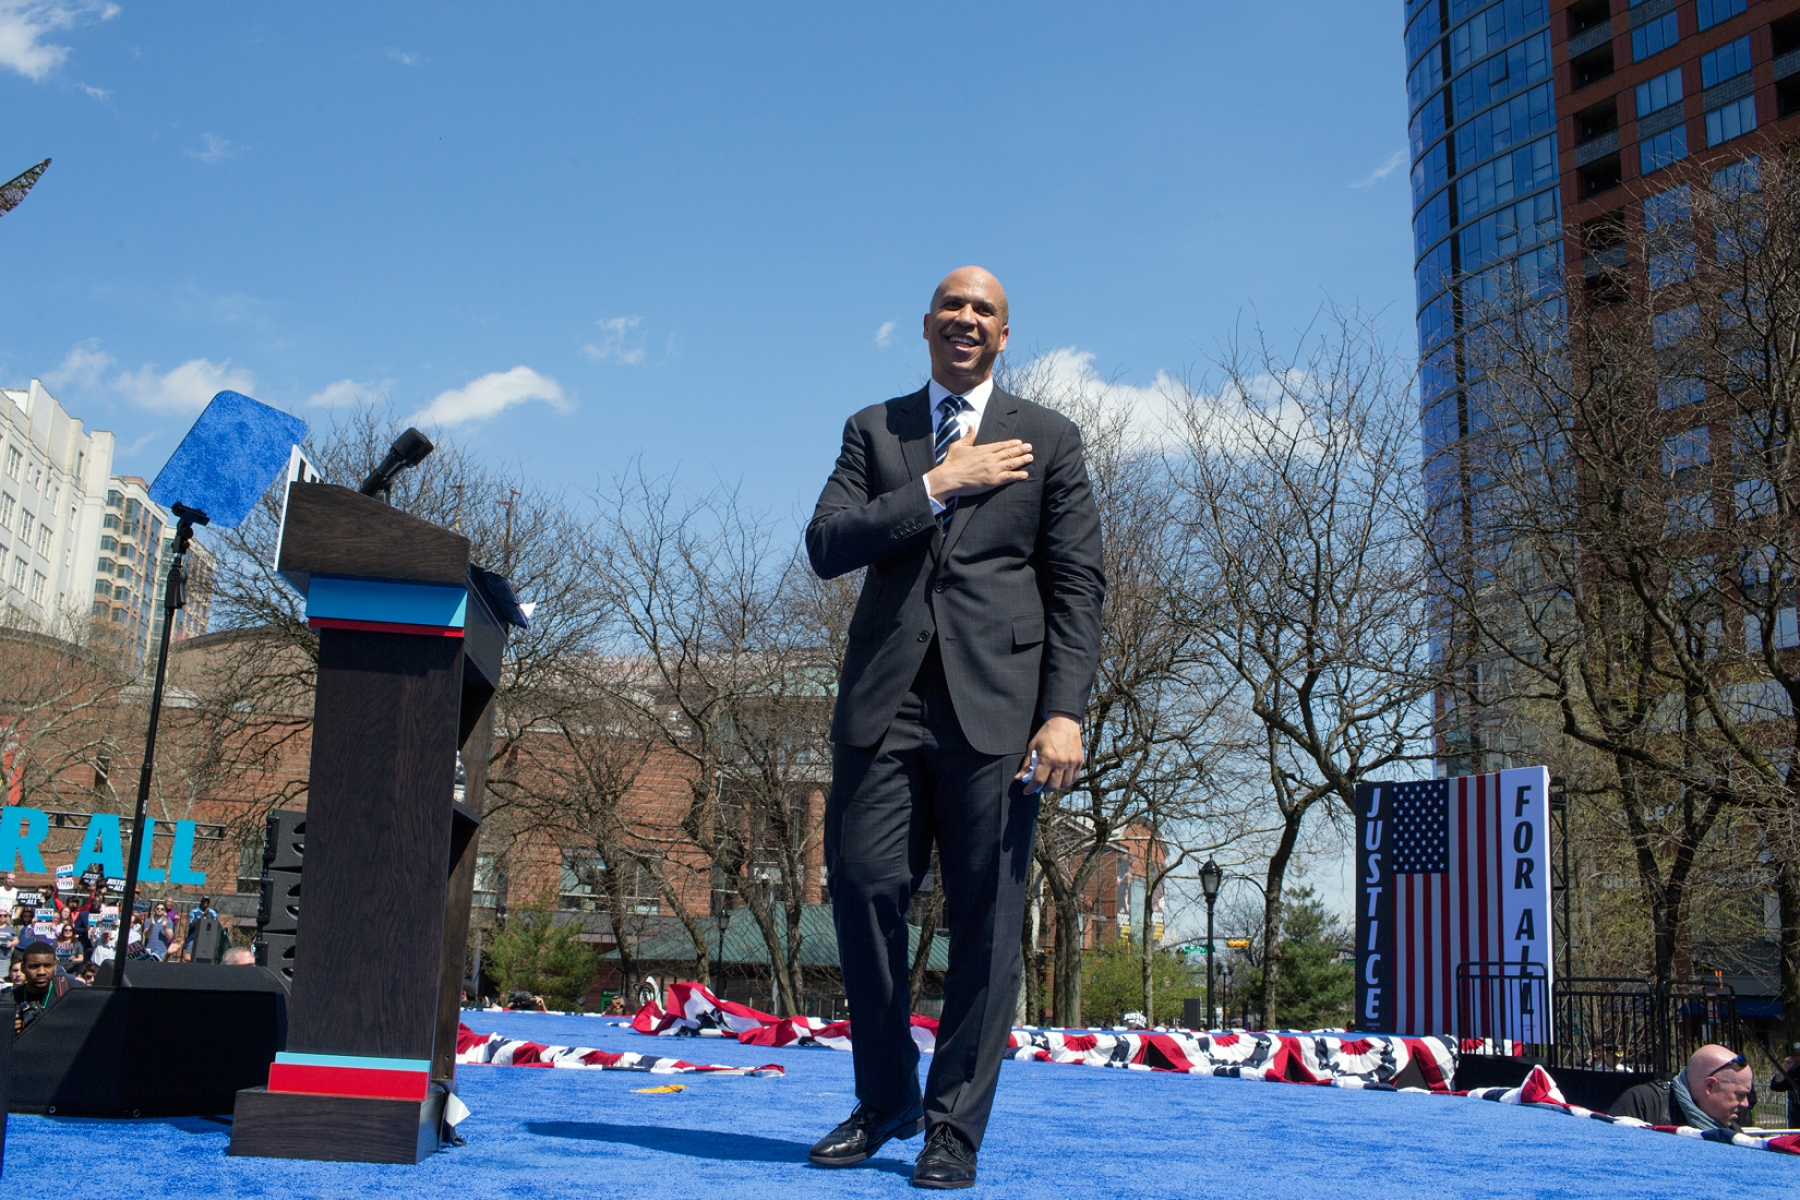 NEWARK, NEW JERSEY - APRIL 13: Senator Cory Booker launches in 2020 Presidential campaign with a speech and a rally on April 13 in downtown Newark, New Jersey. (Photo by Andrew Lichtenstein/Corbis via Getty Images)